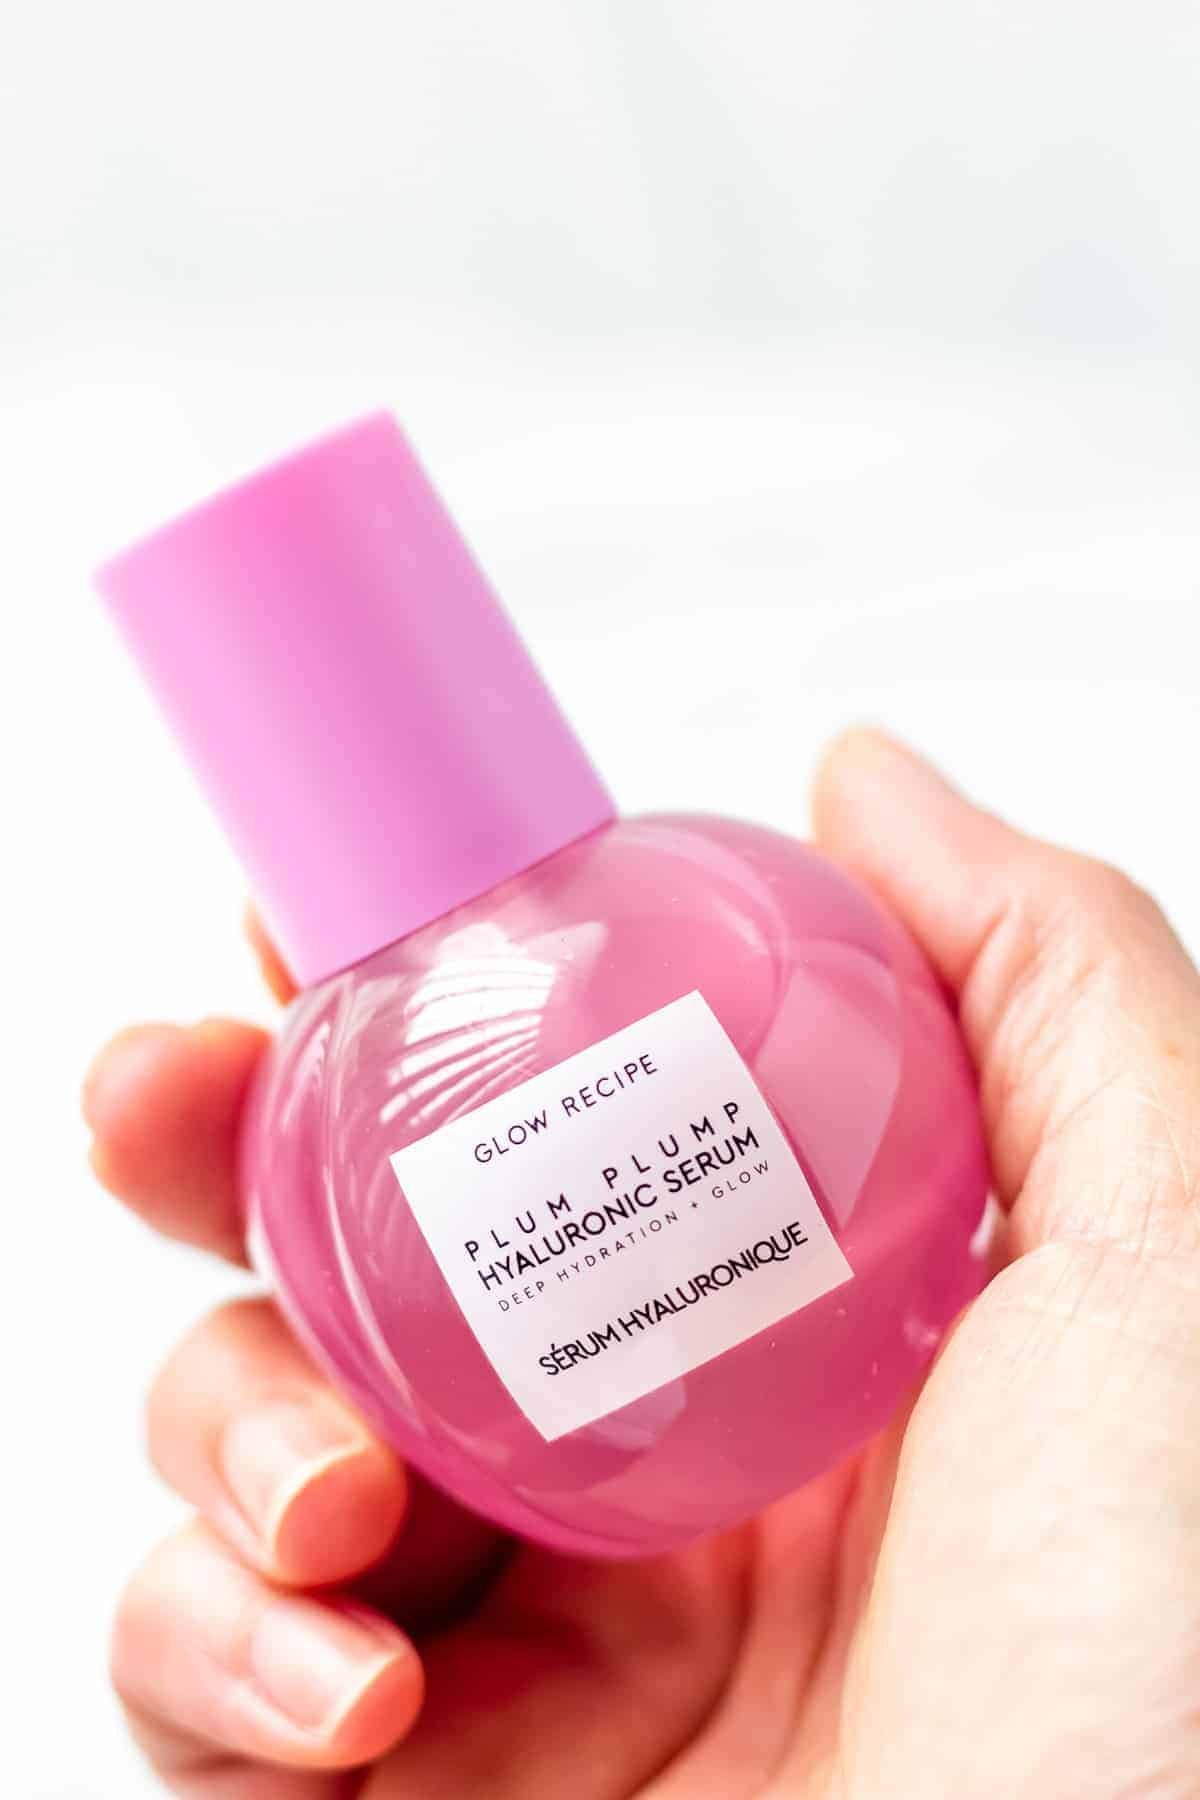 A hand holding a bottle of Glow Recipe Plum Plump hyaluronic serum on a white background.